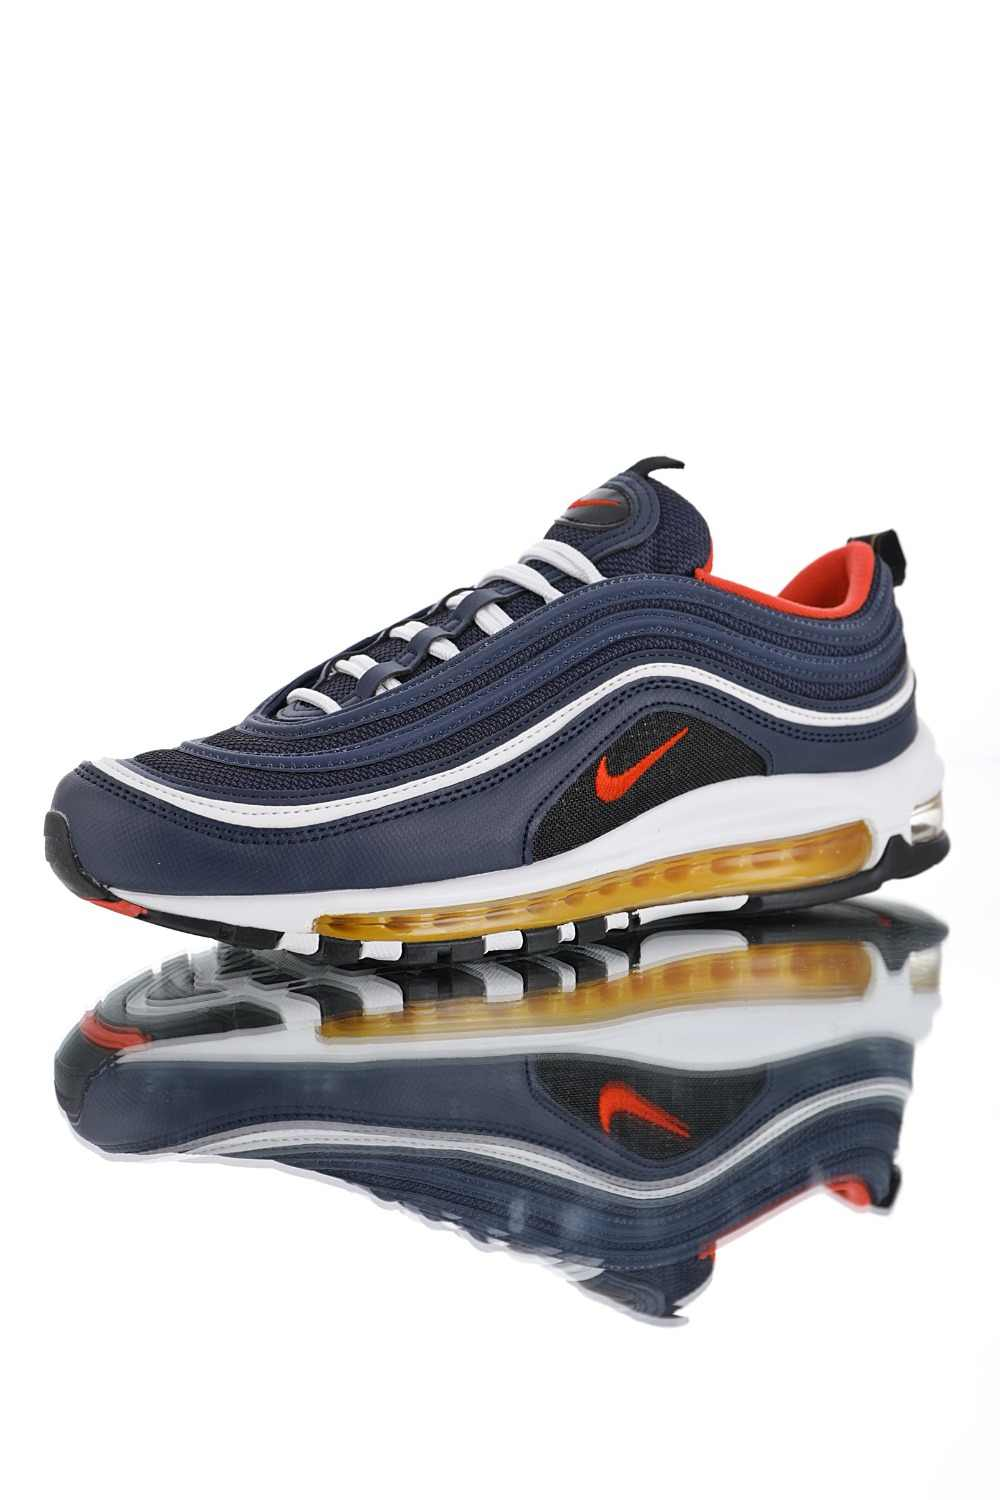 4c330ec8ba ... High Quality Original Nike Air Max 97